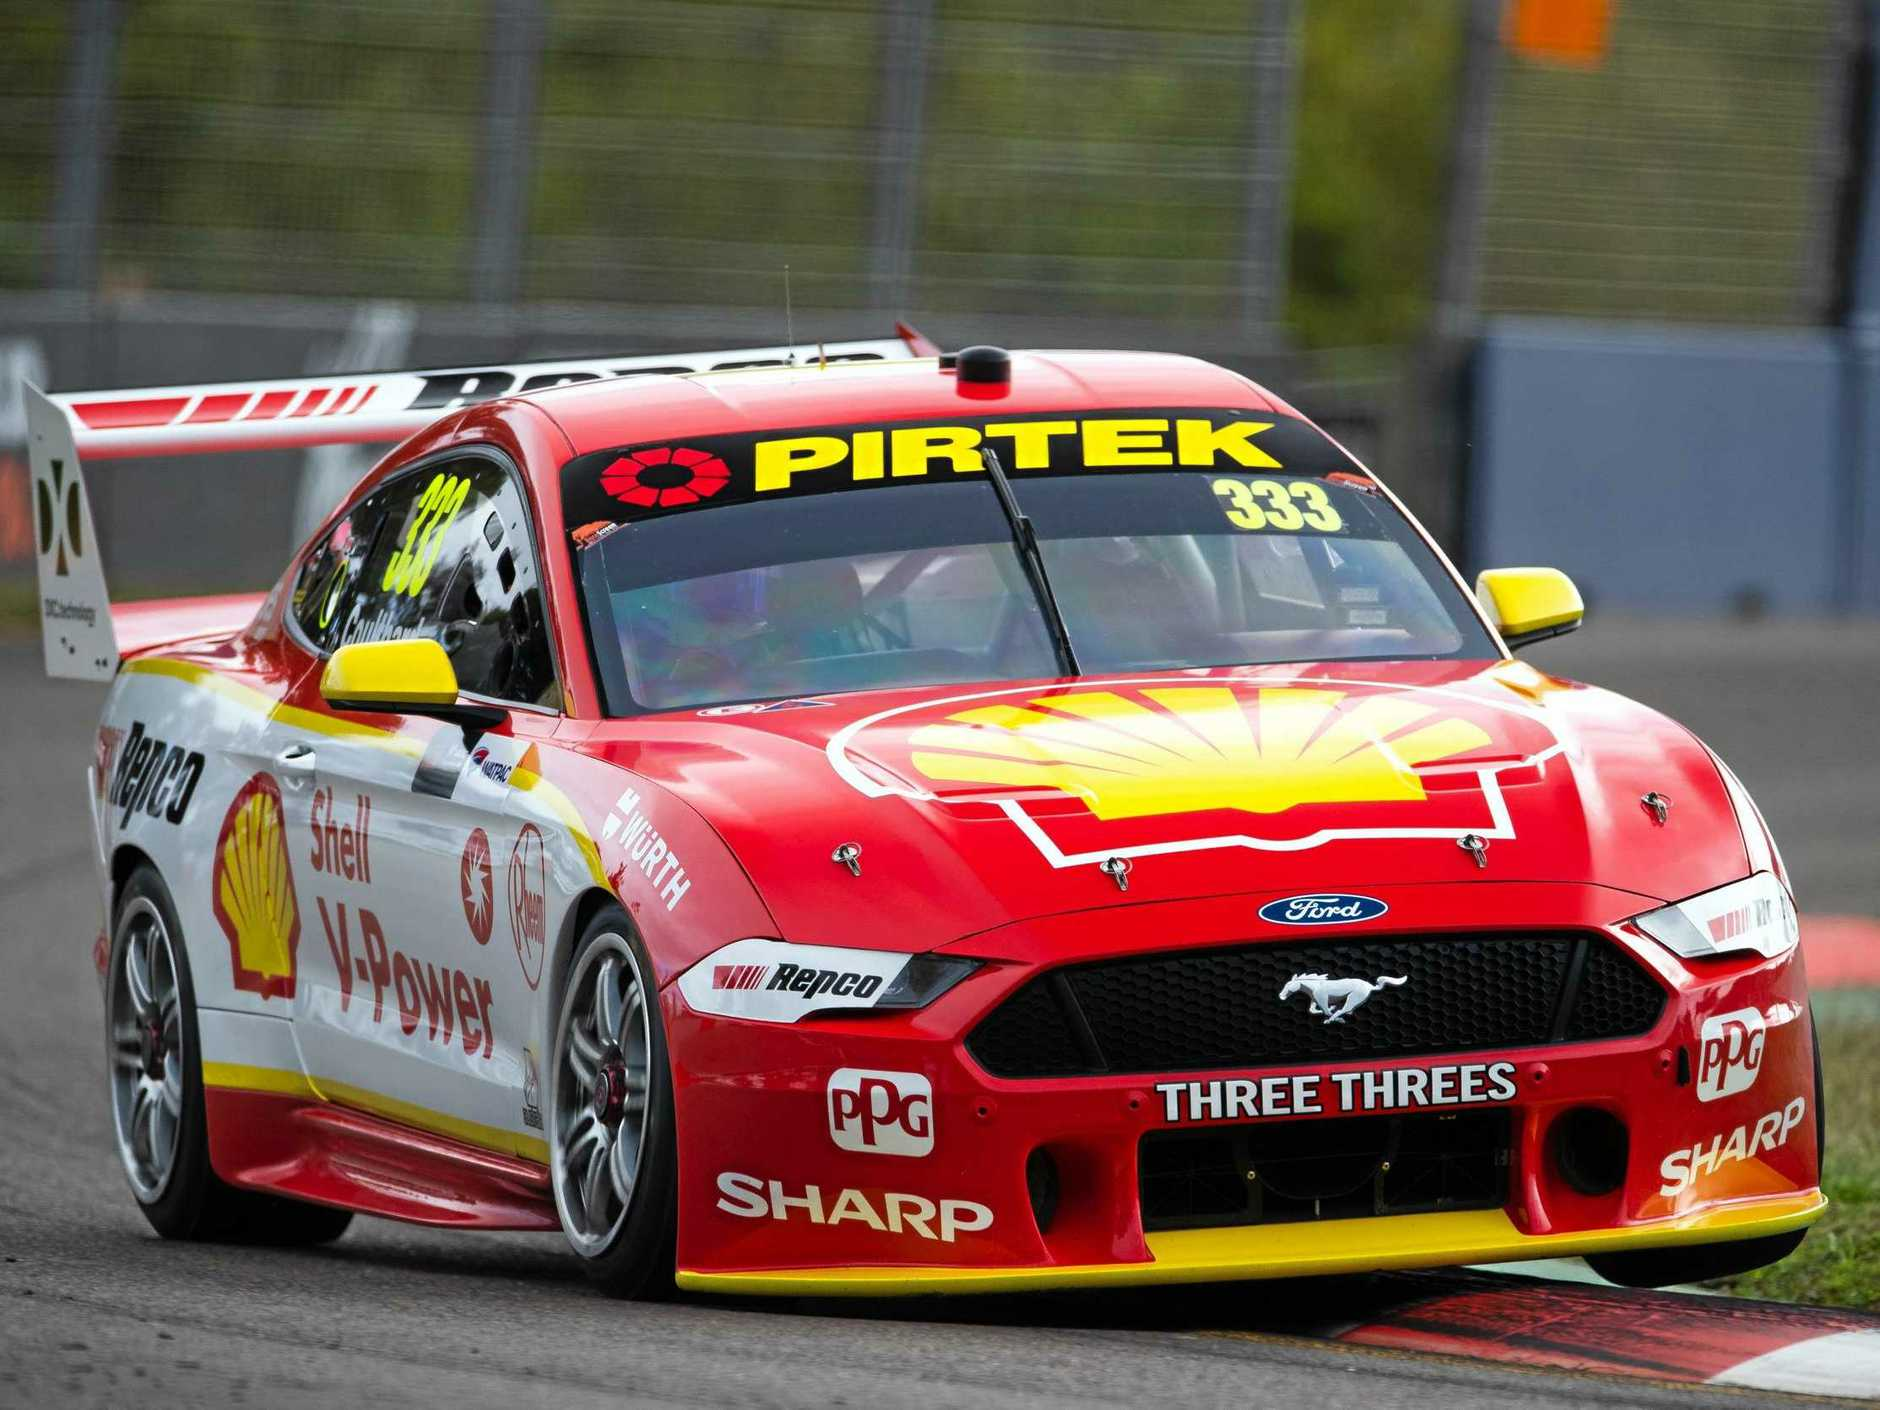 Fabian Coulthard has shaded Supercars leader Scott McLaughin in final practice in Townsville. Picture: Daniel Kalisz/Getty Images